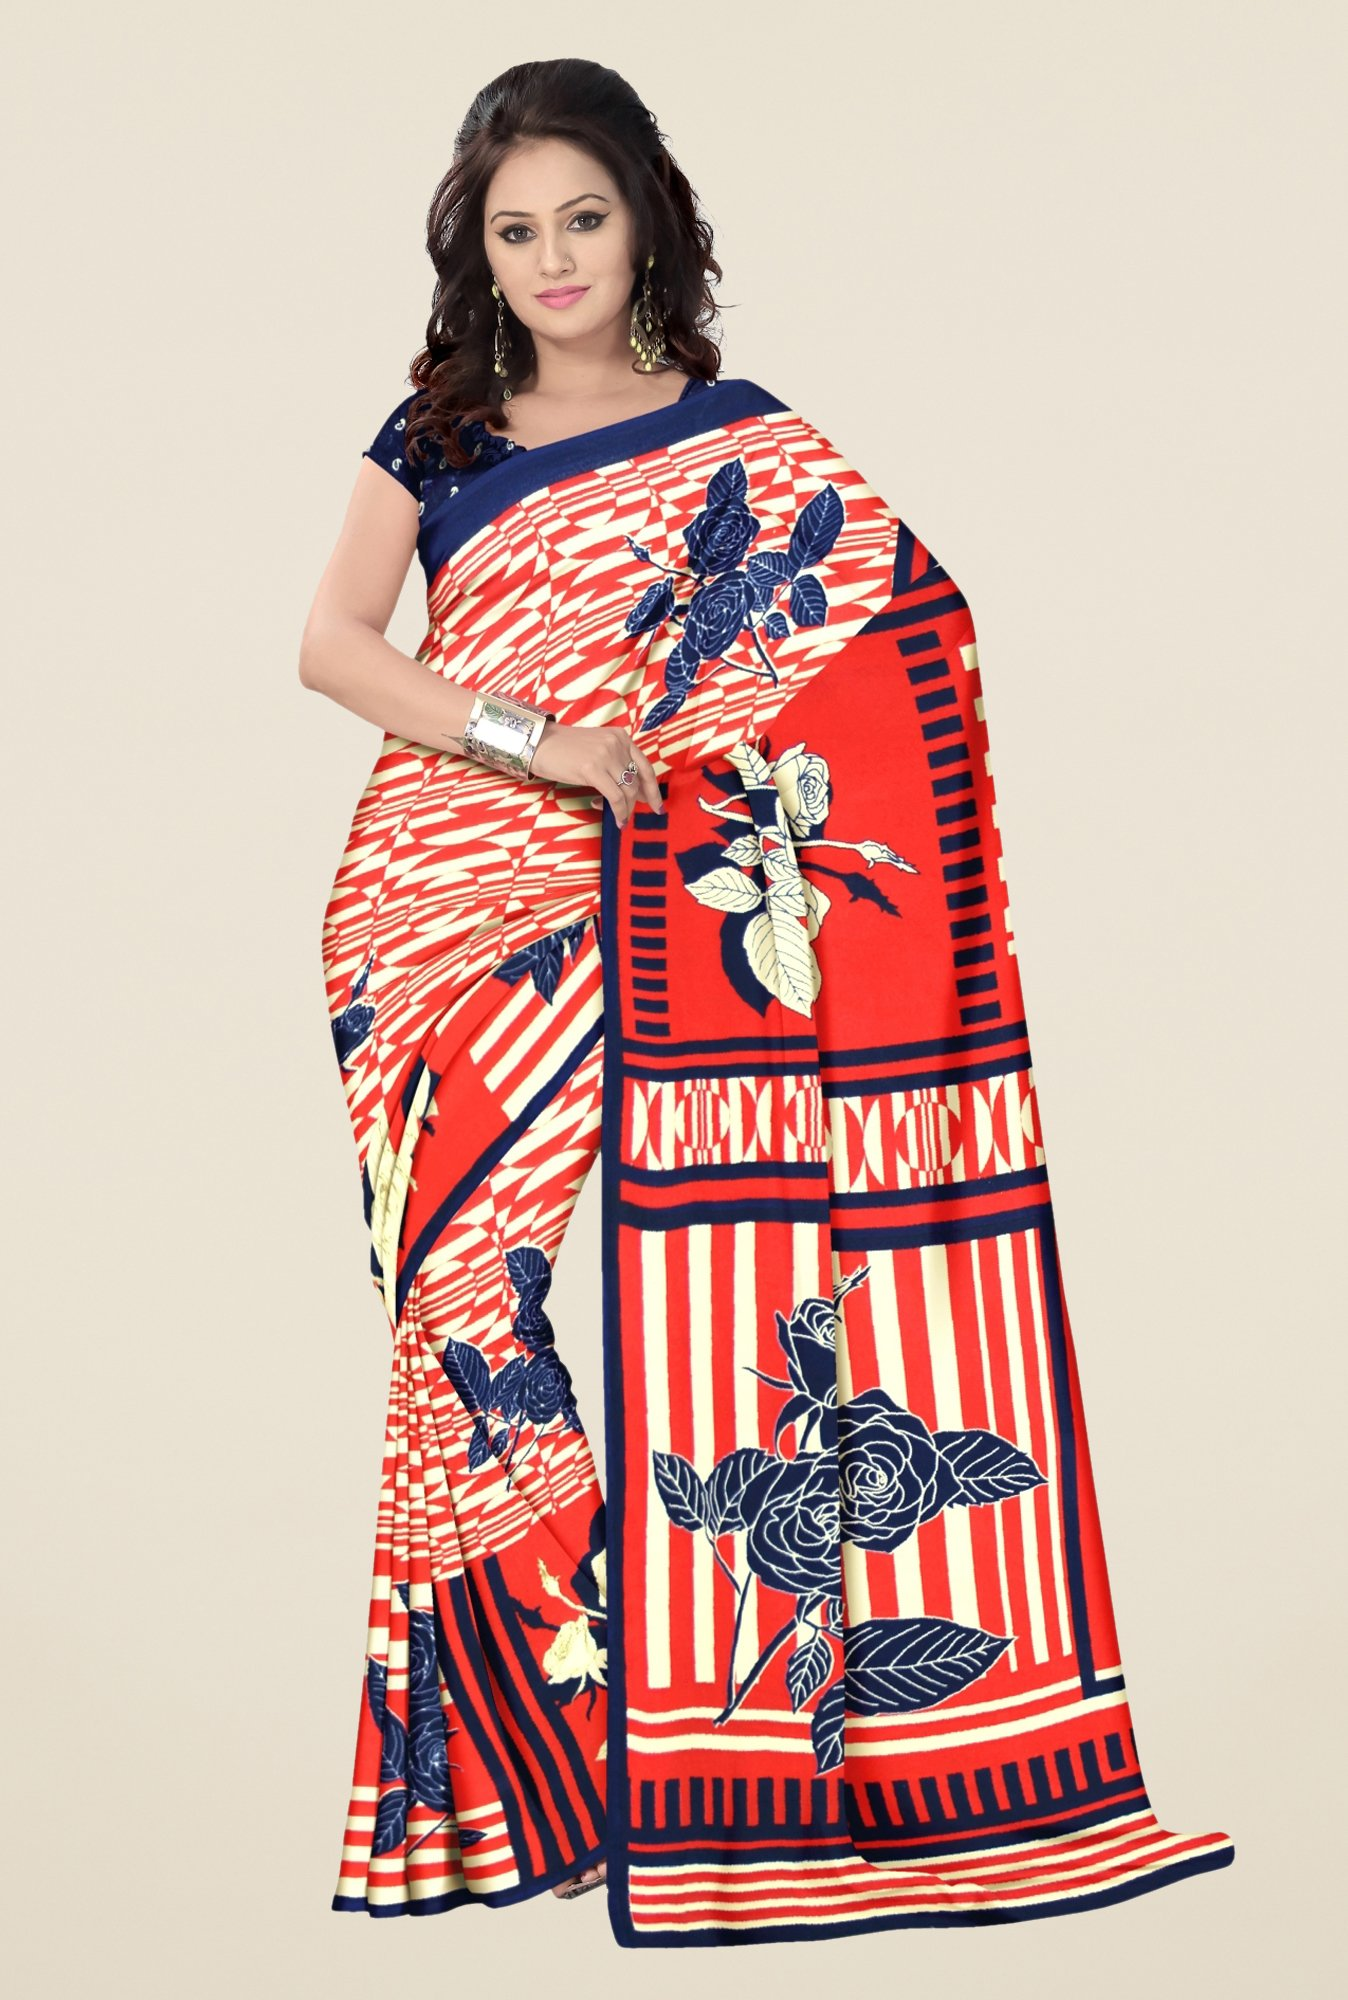 Triveni Red Printed Faux Georgette Dry Clean Saree